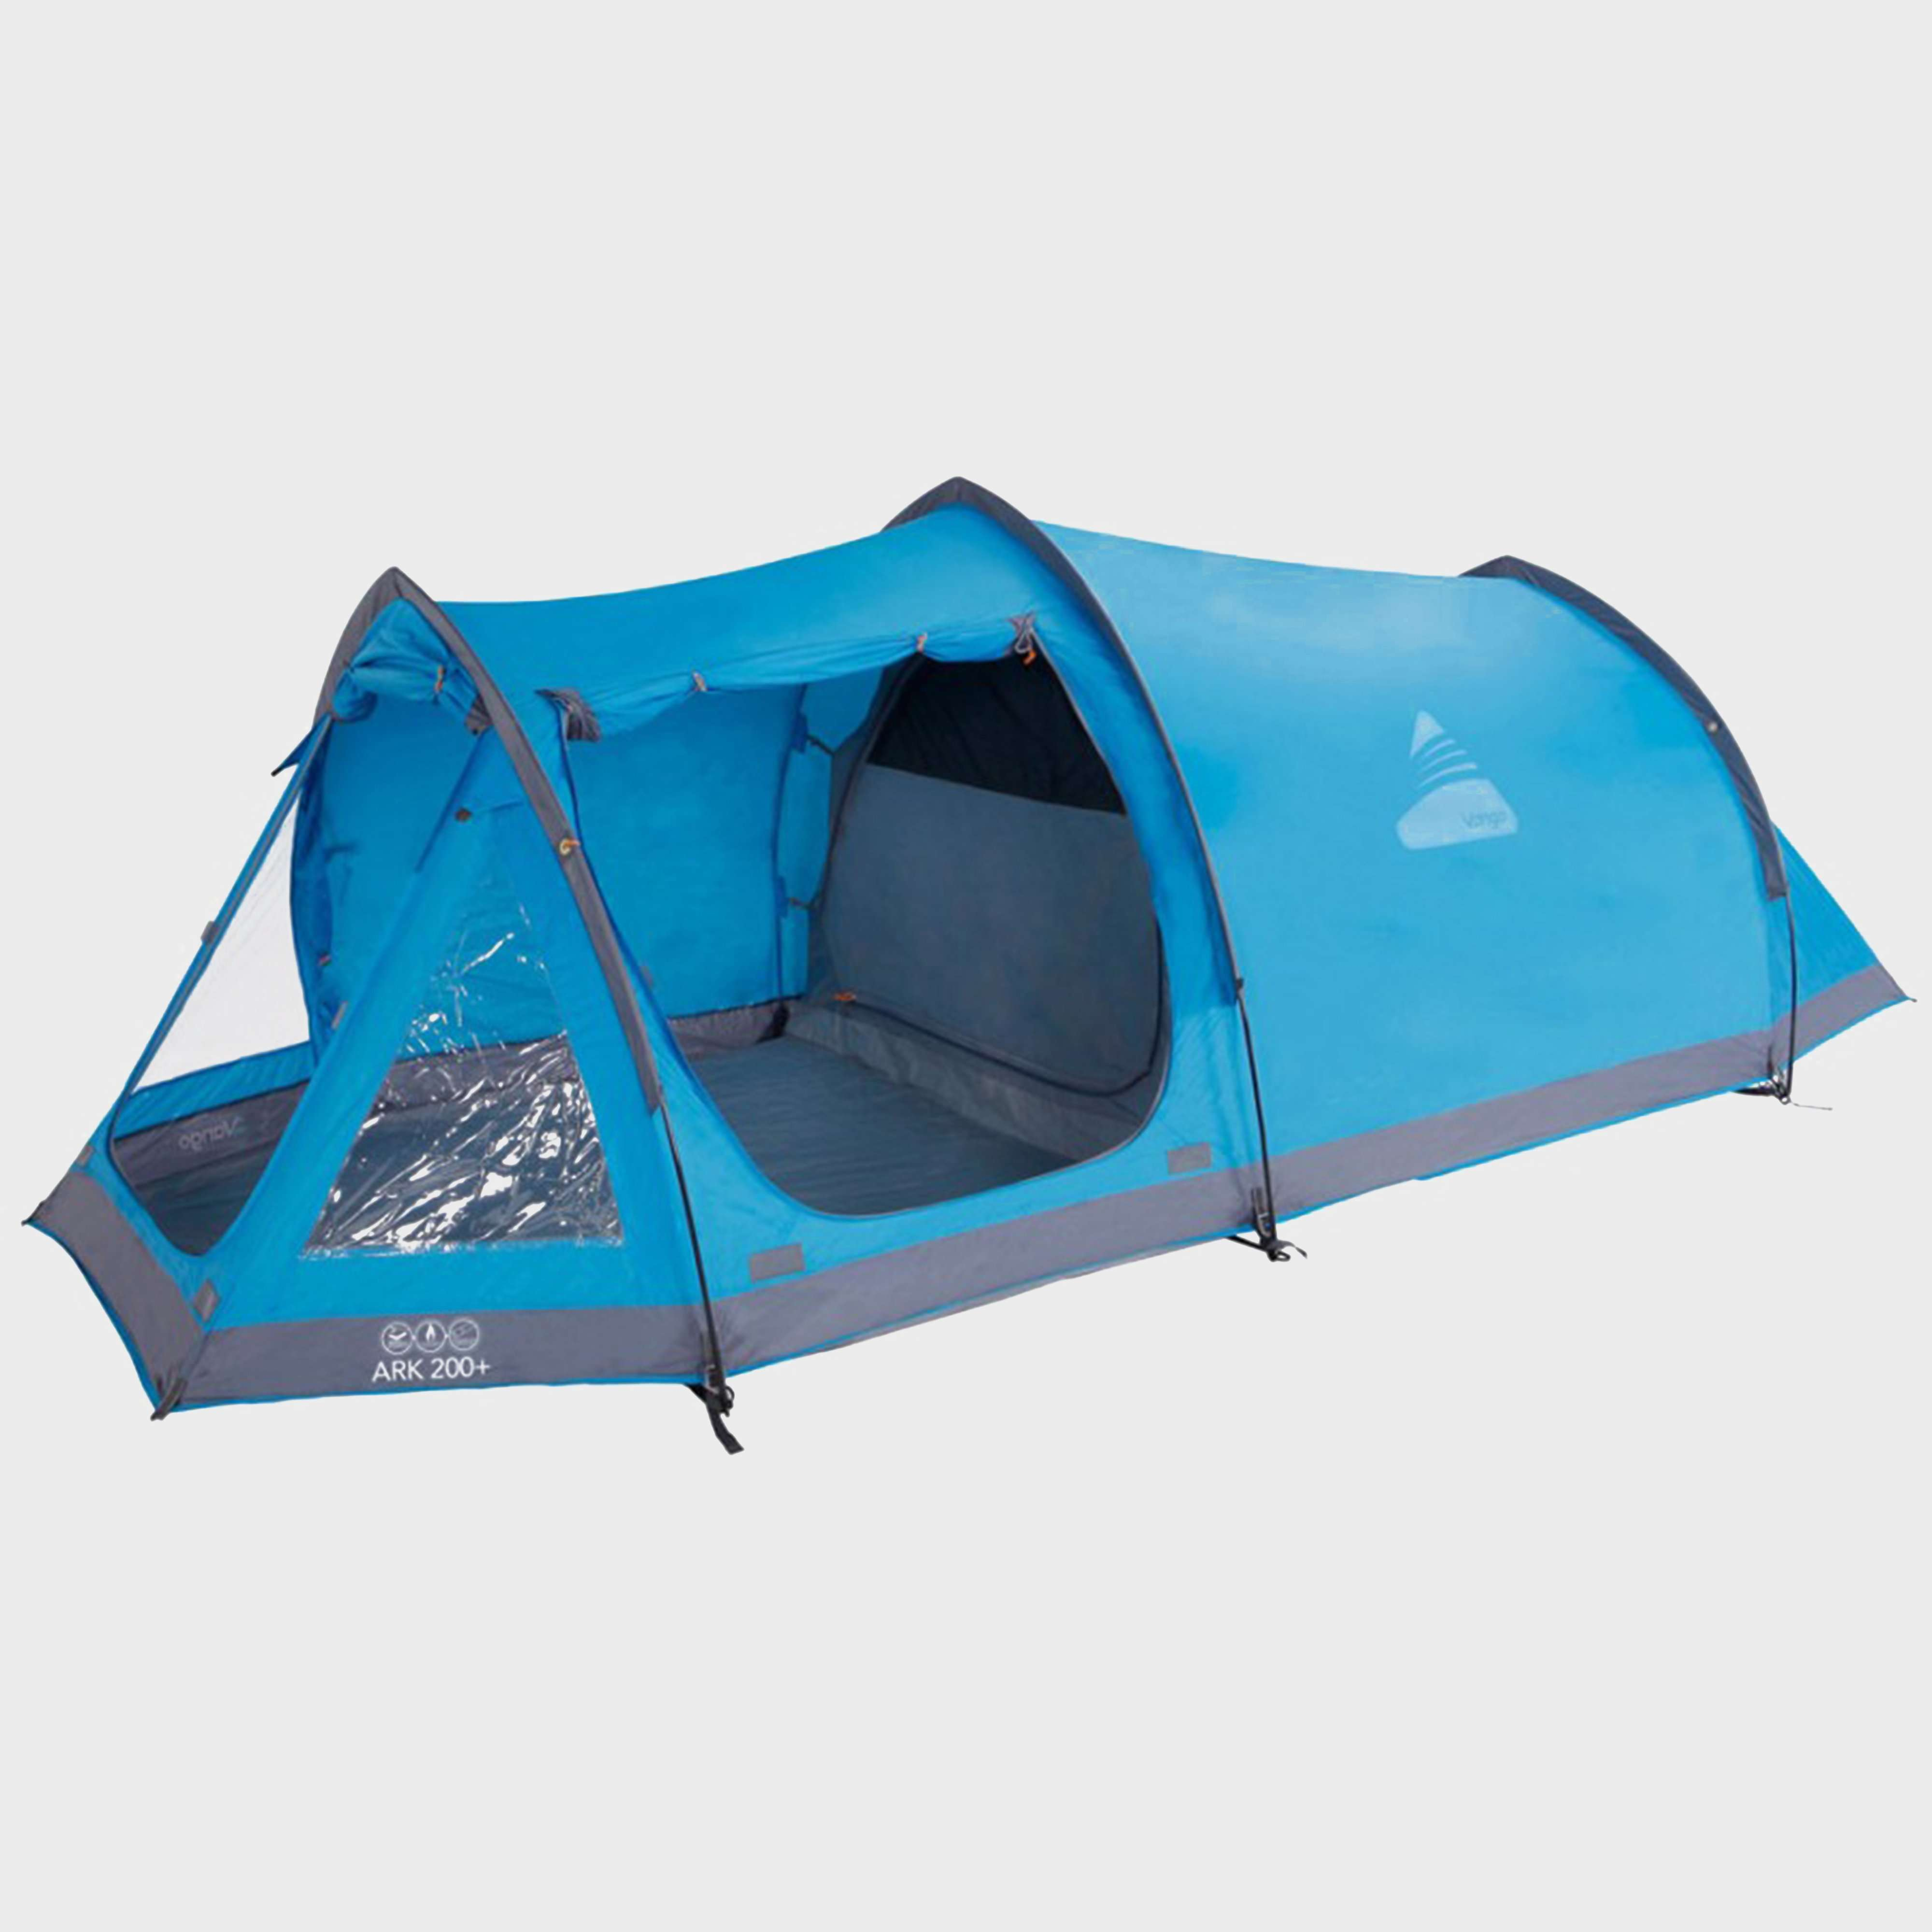 VANGO Vango Ark 200 Plus